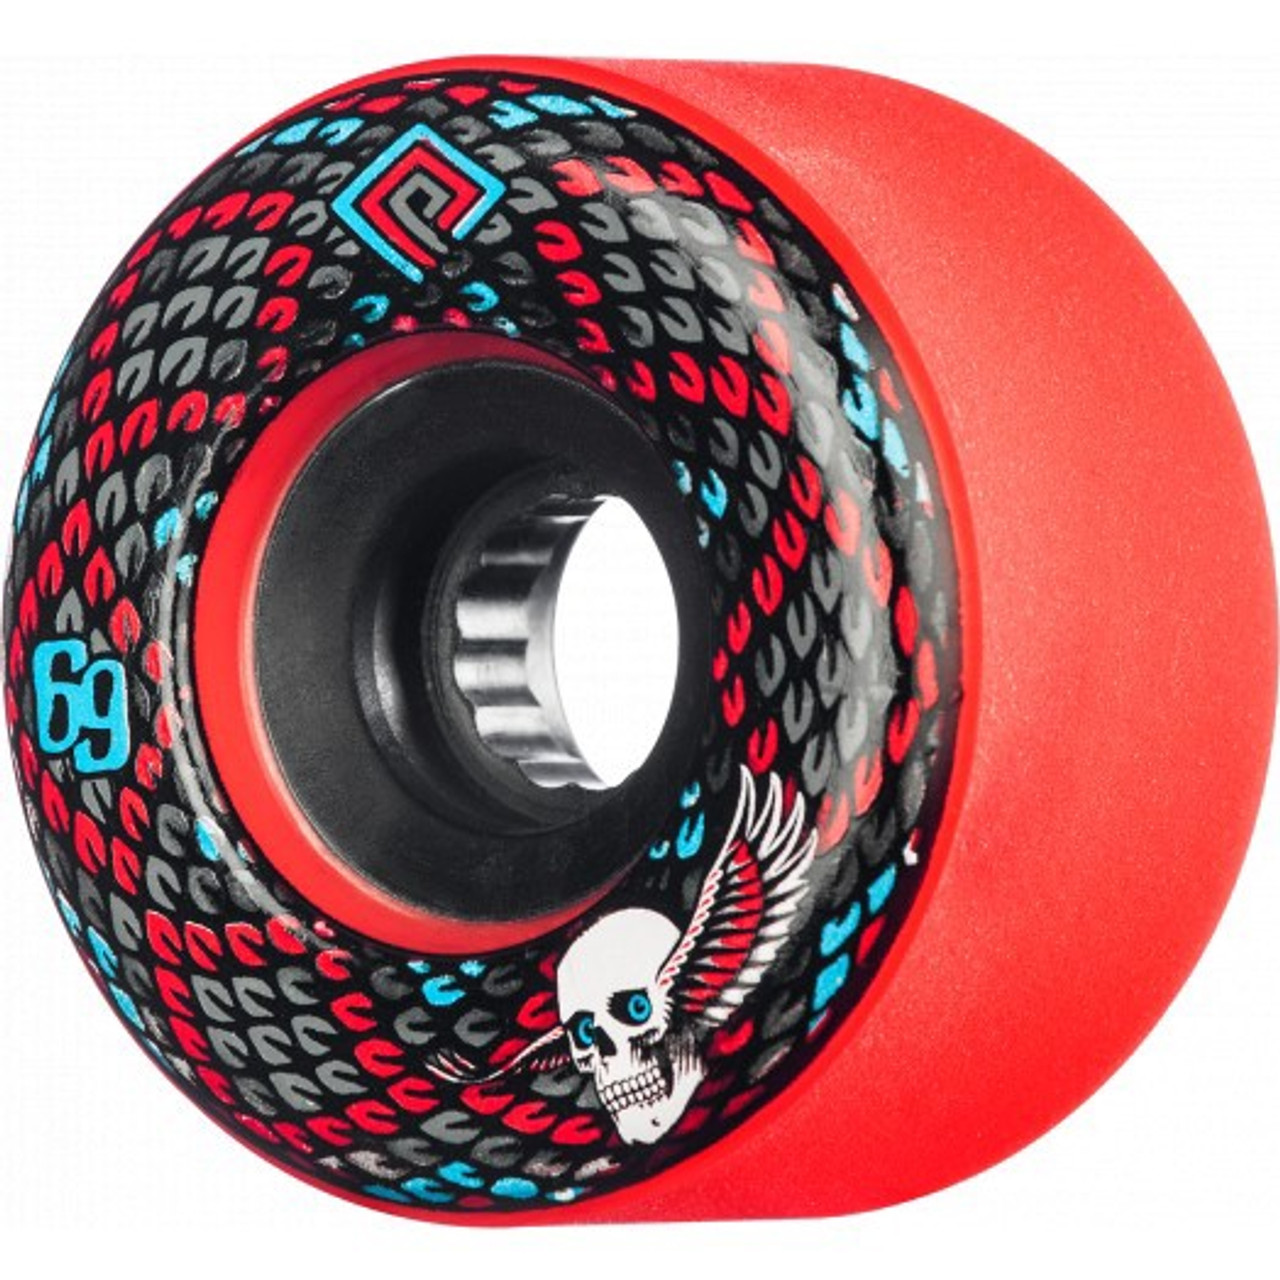 Powell Peralta Snakes Wheels 69mm 75a Red 88 Skateboards